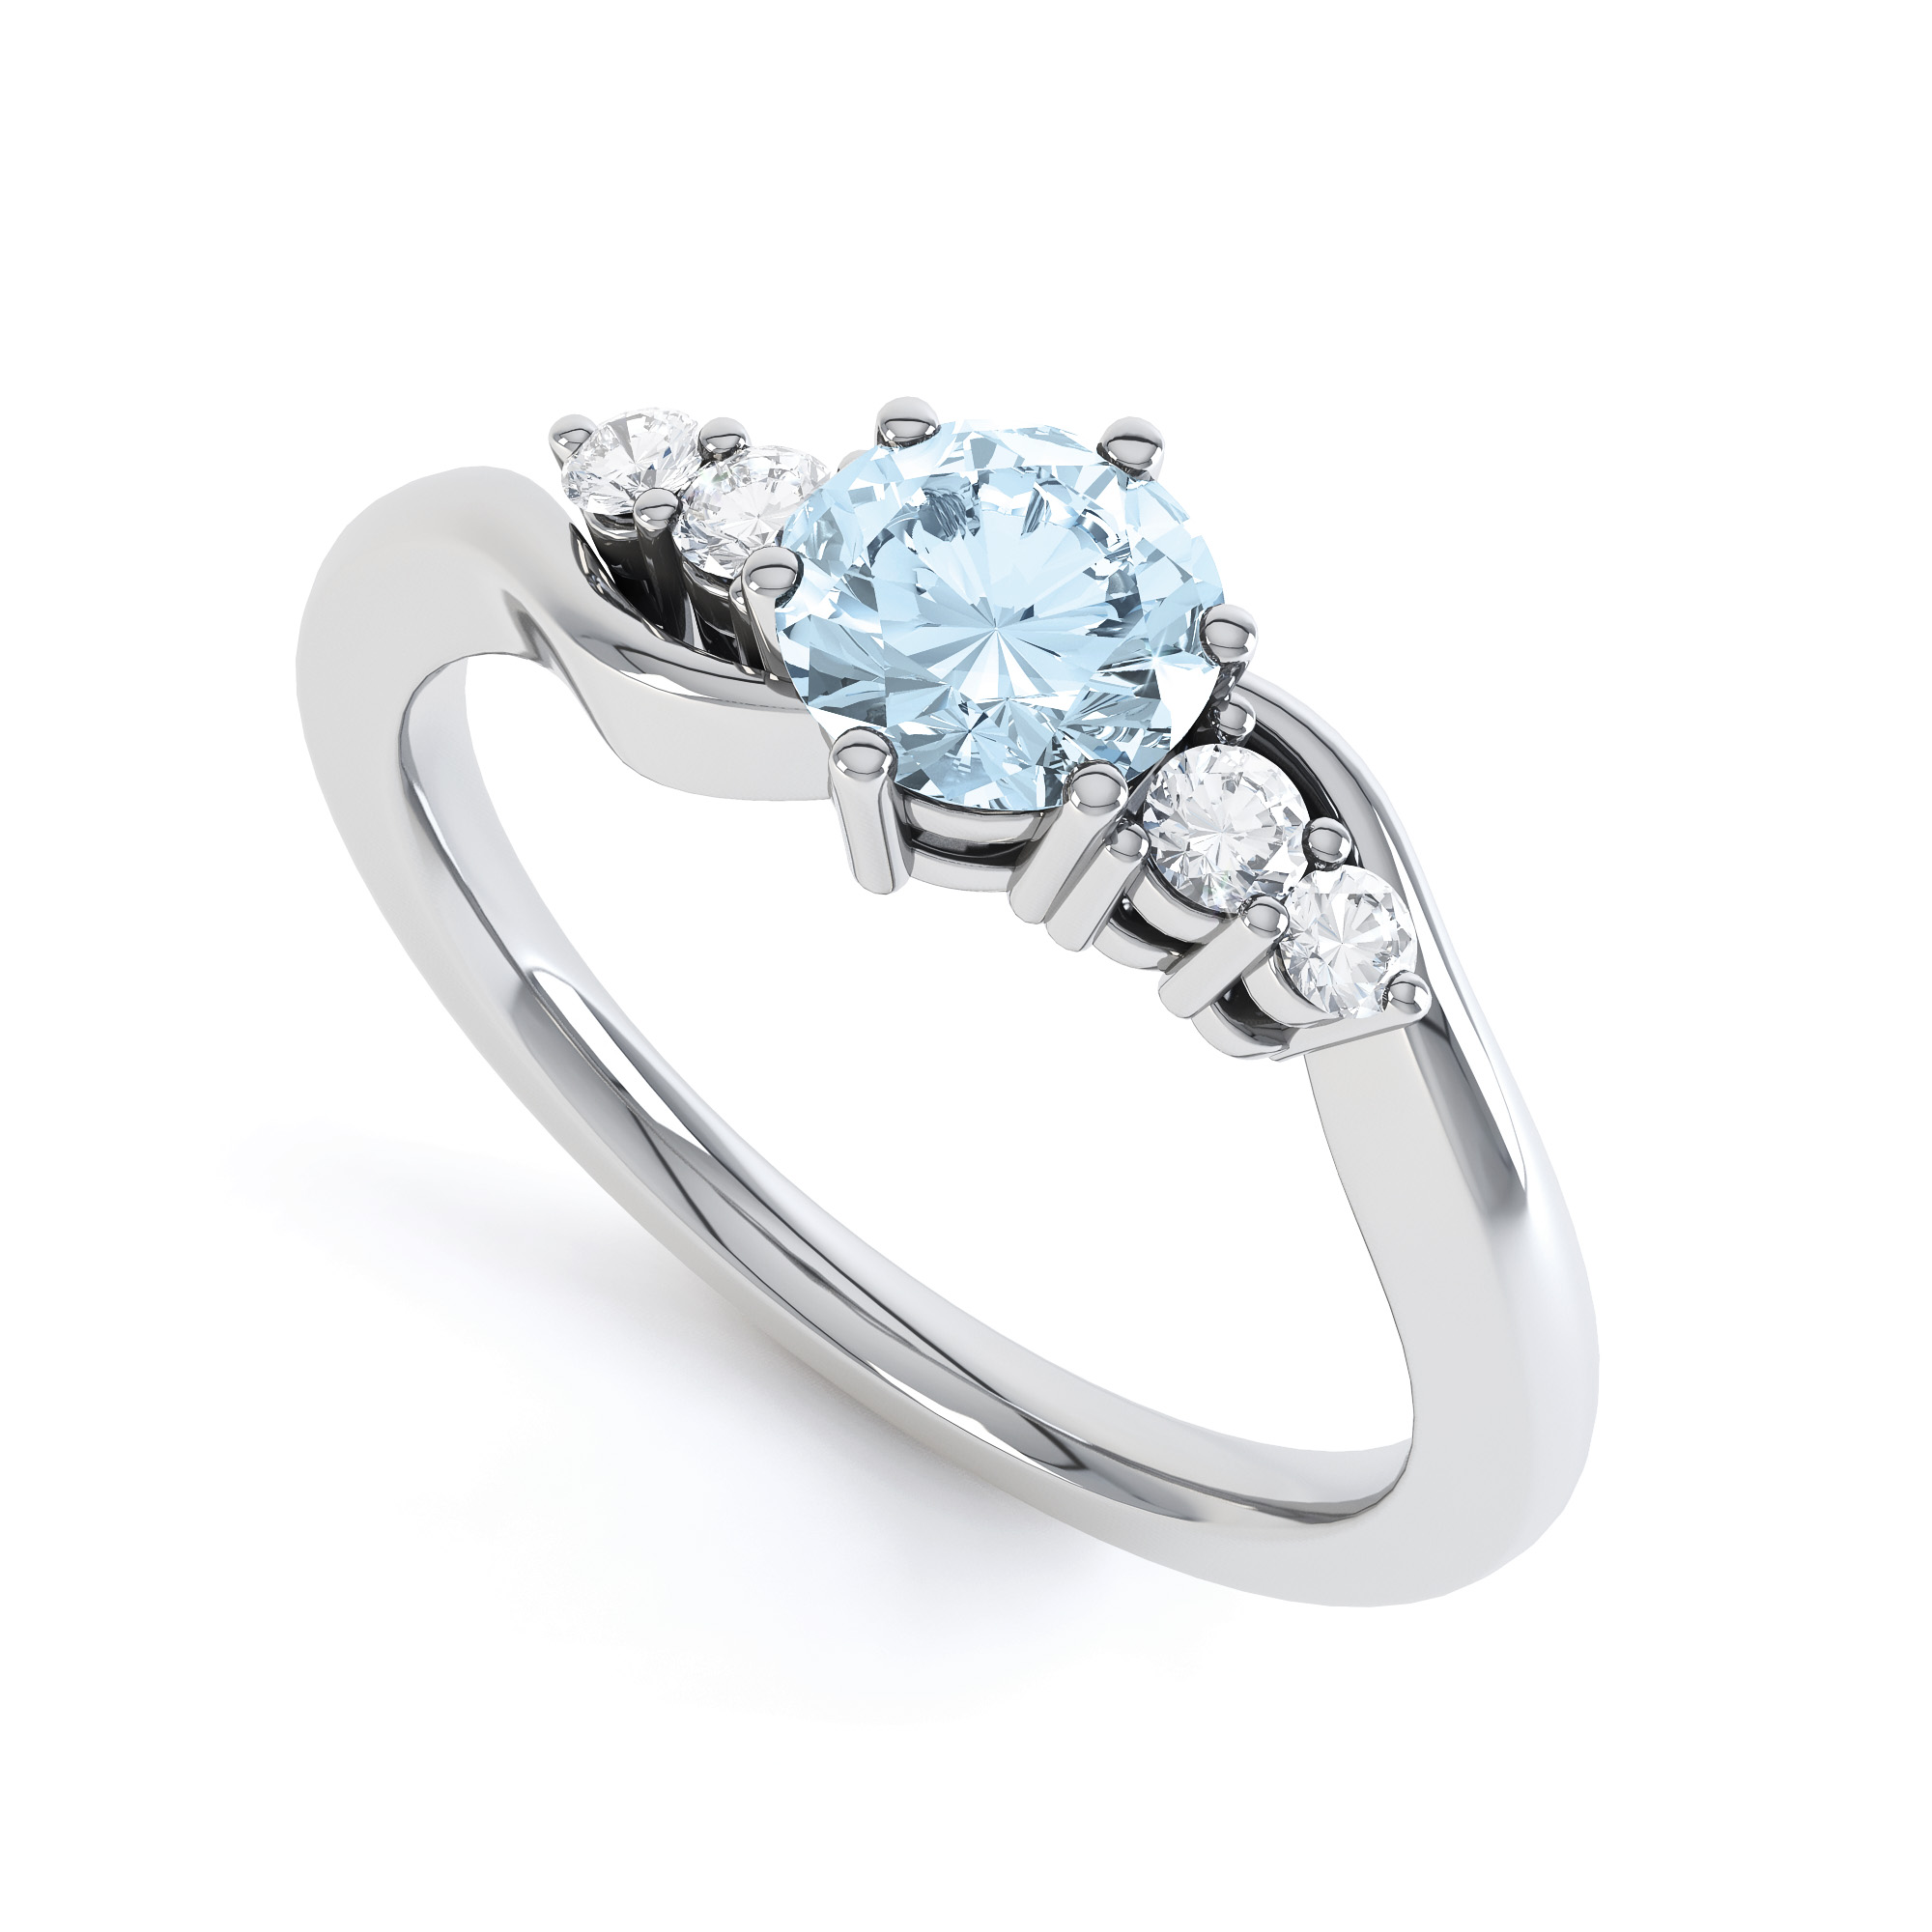 Tickled Blue Engagement Ring